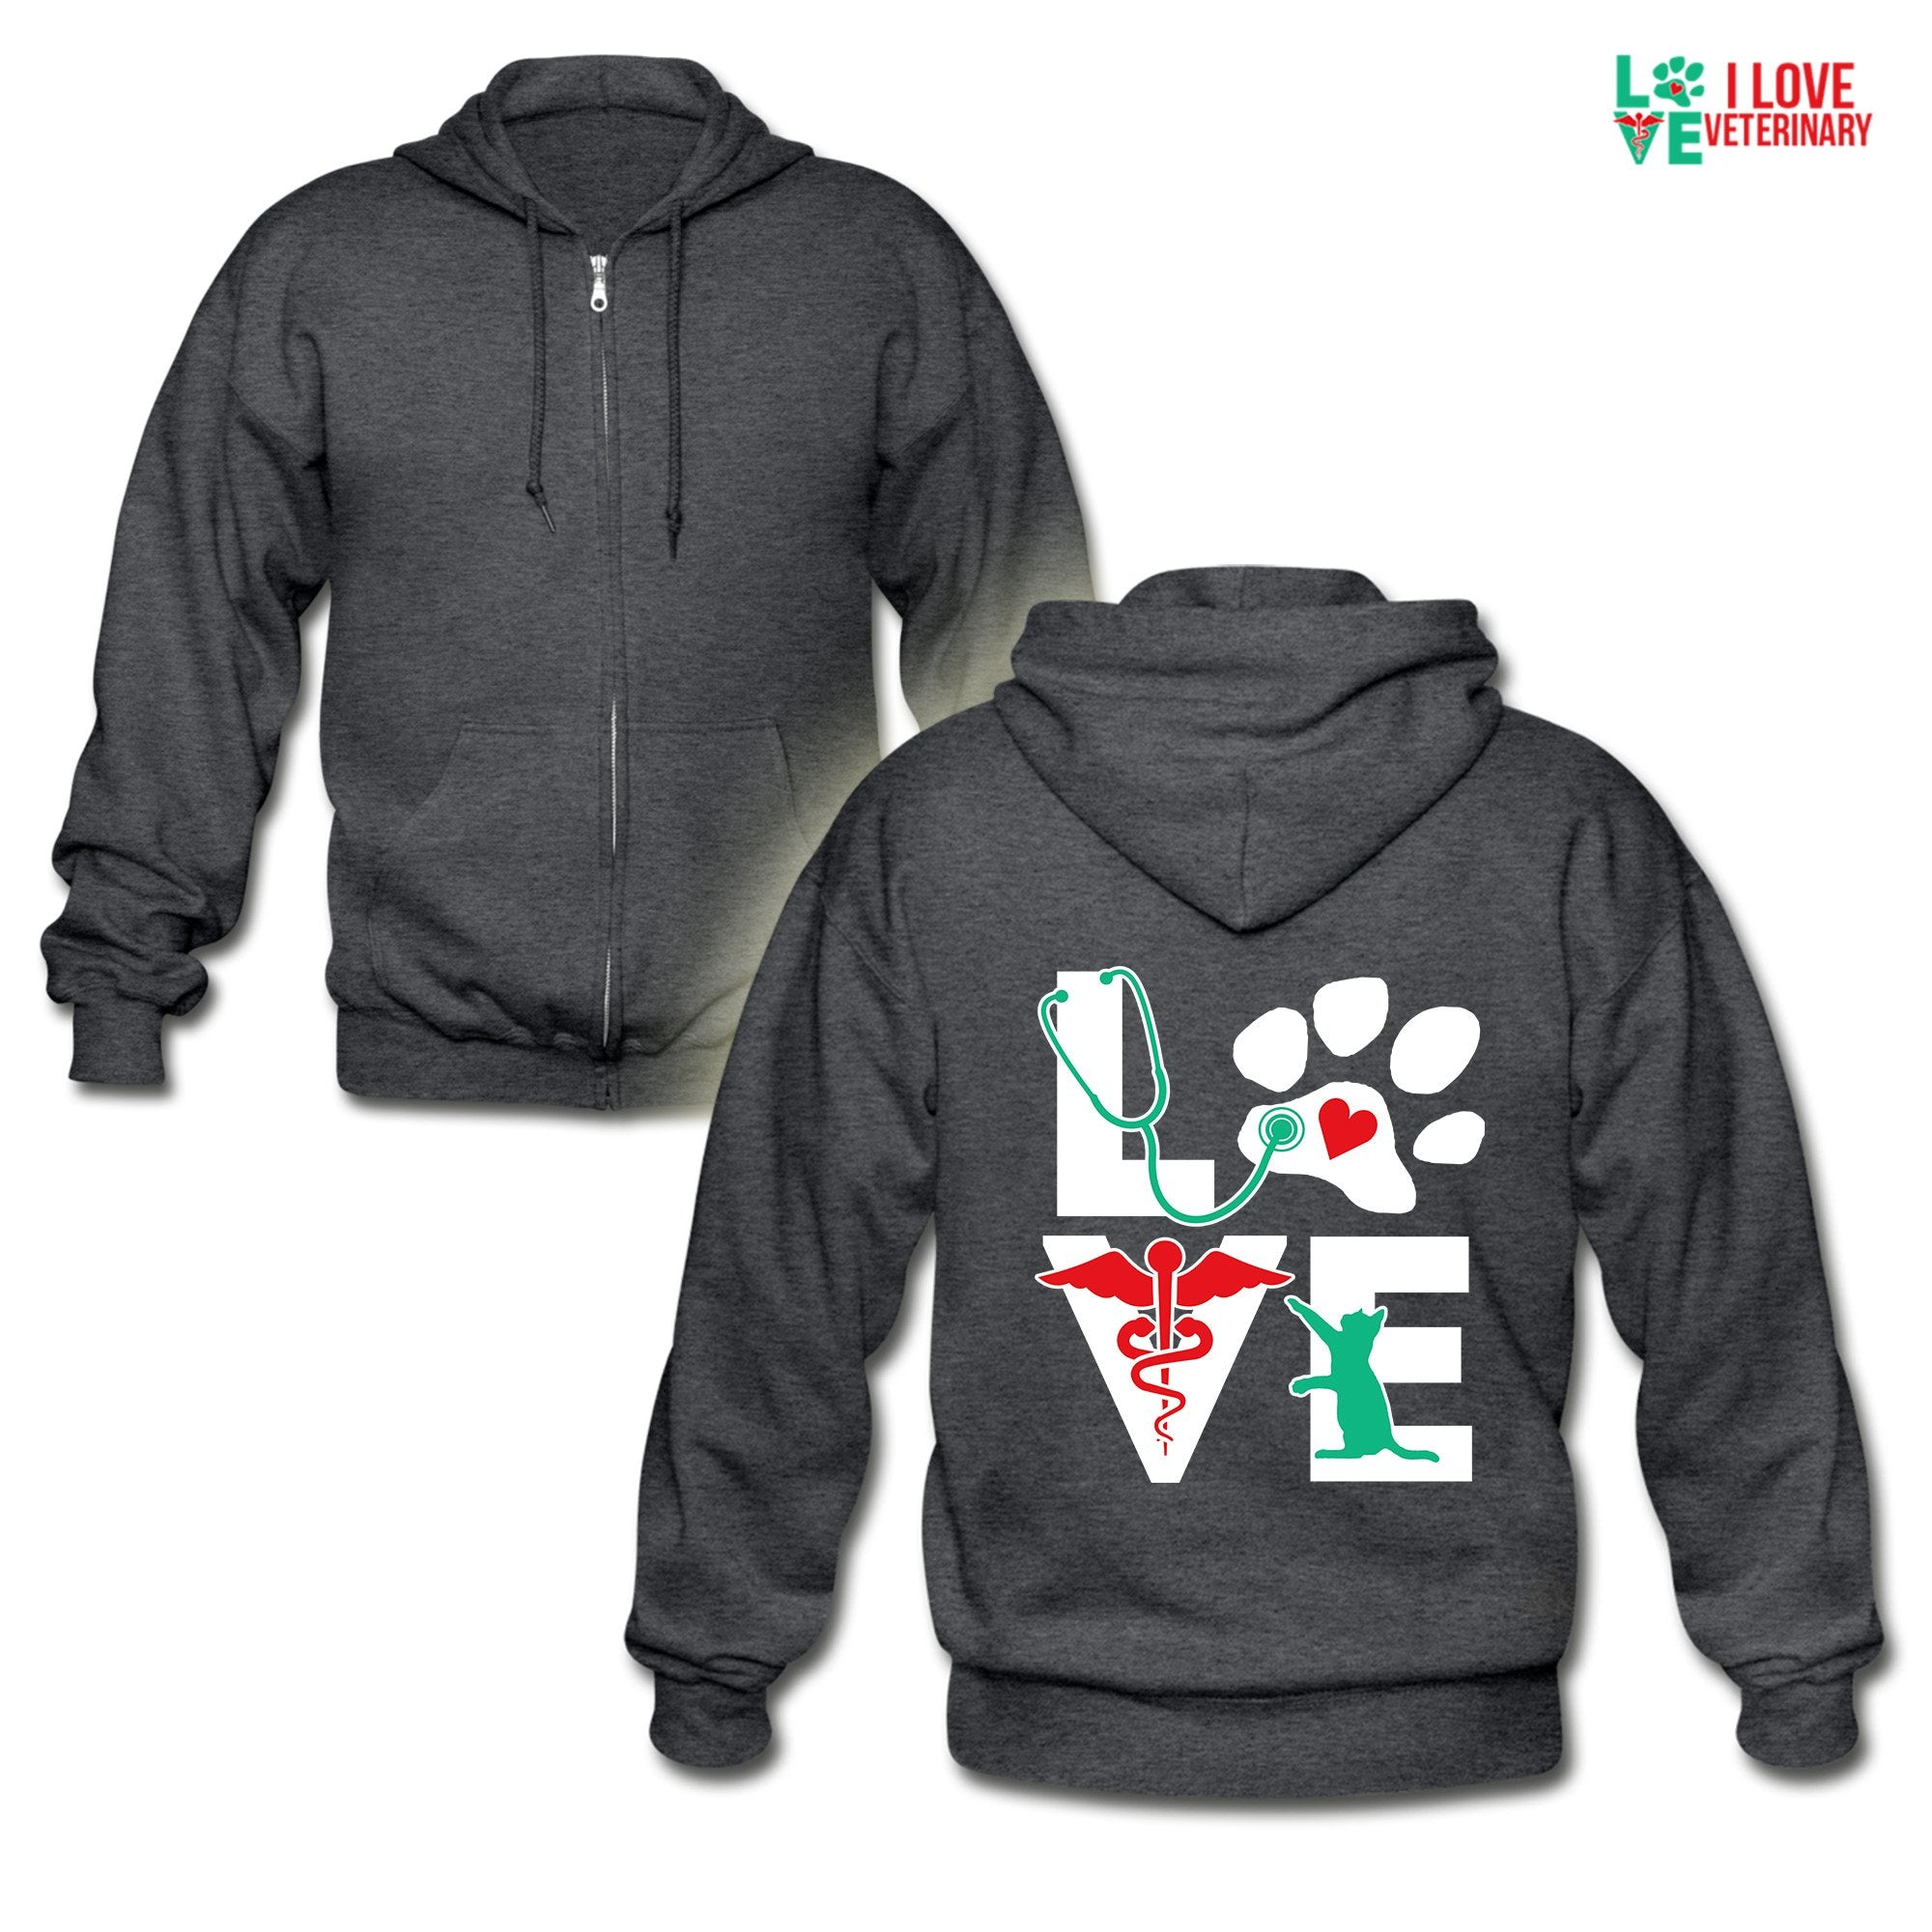 Veterinary - Love cat Unisex Zip Hoodie-Gildan Heavy Blend Adult Zip Hoodie-I love Veterinary